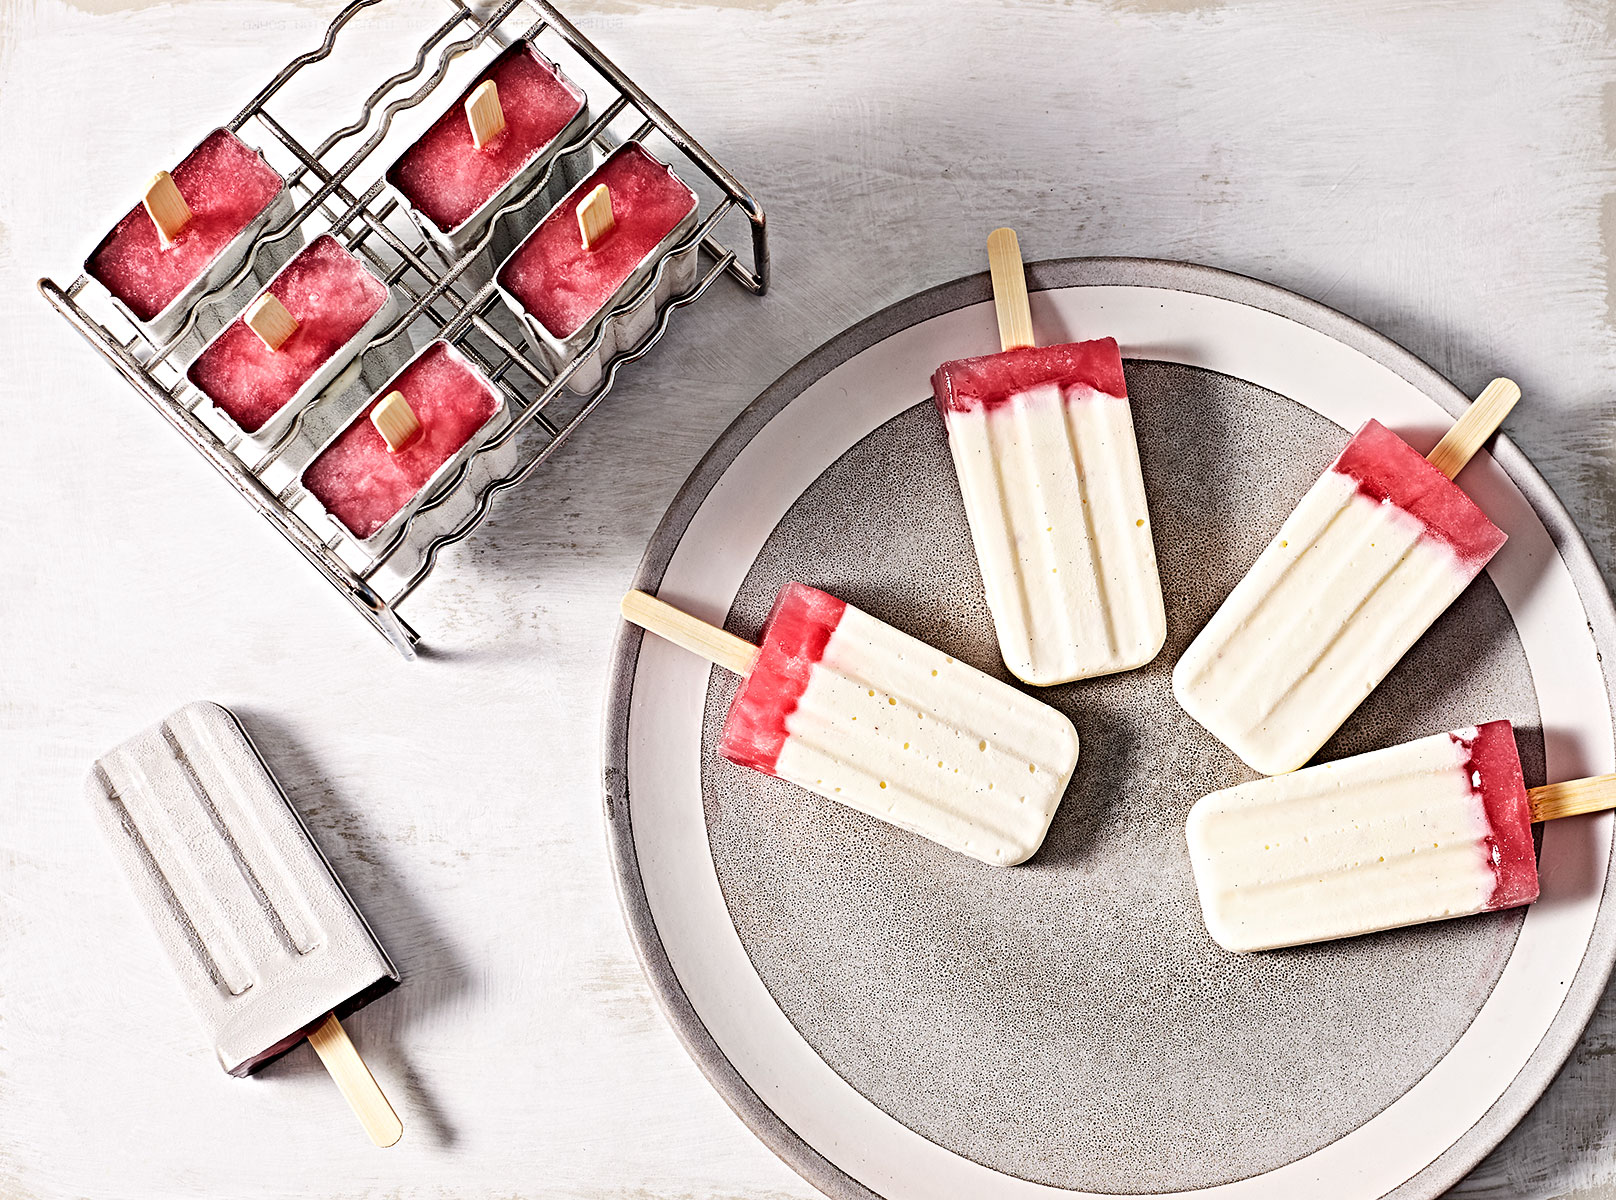 Creamy cheesecake rhubarb popsicles in a mold and on a plate.